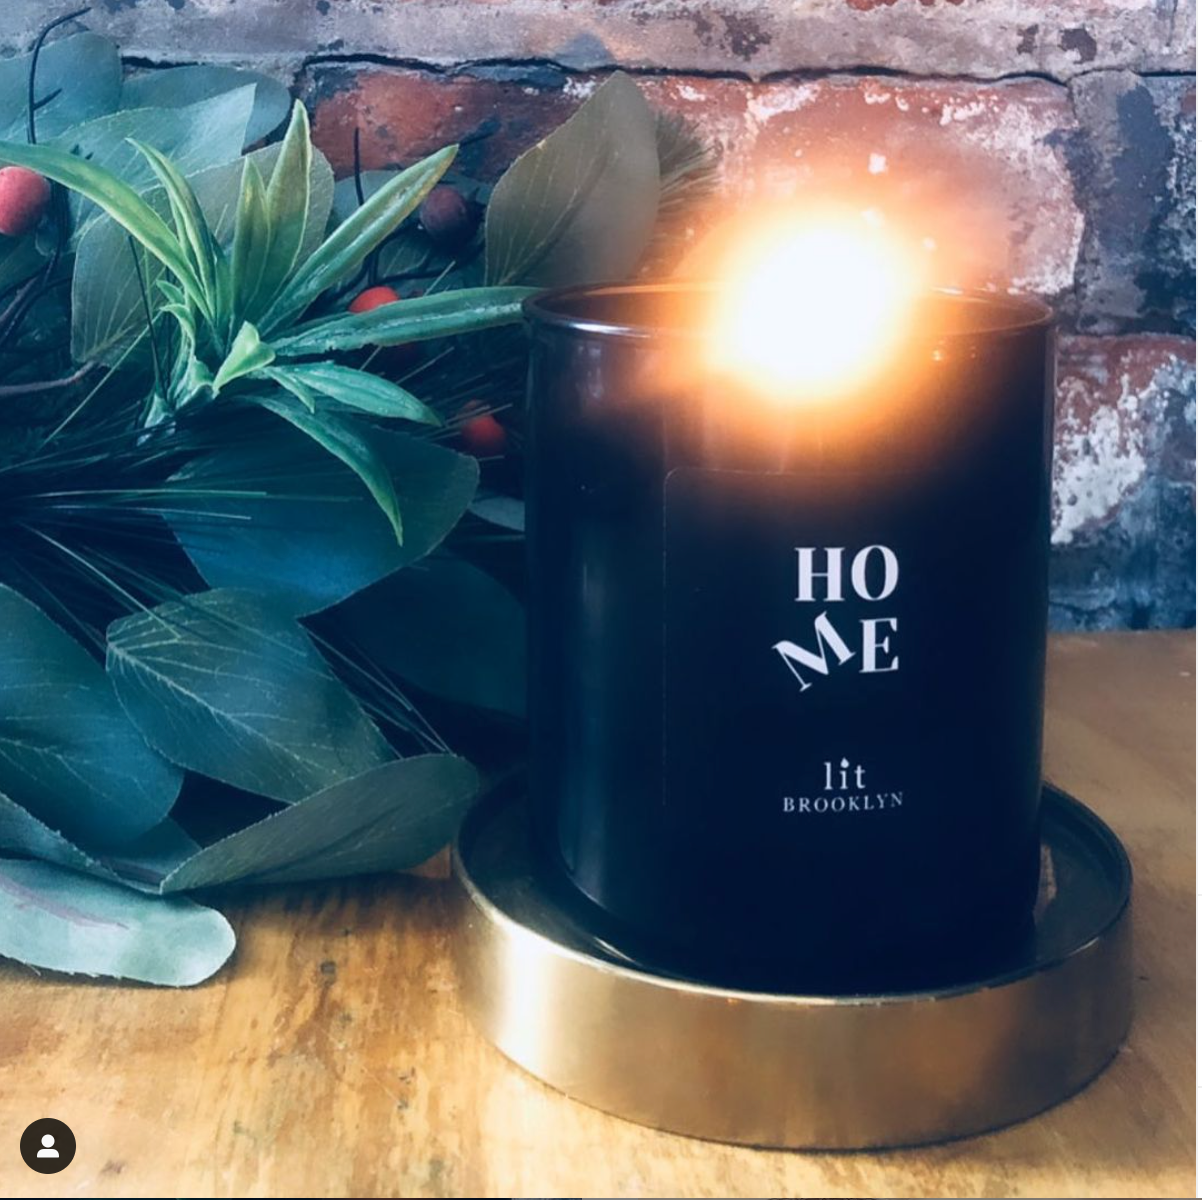 Lit Brooklyn Candles